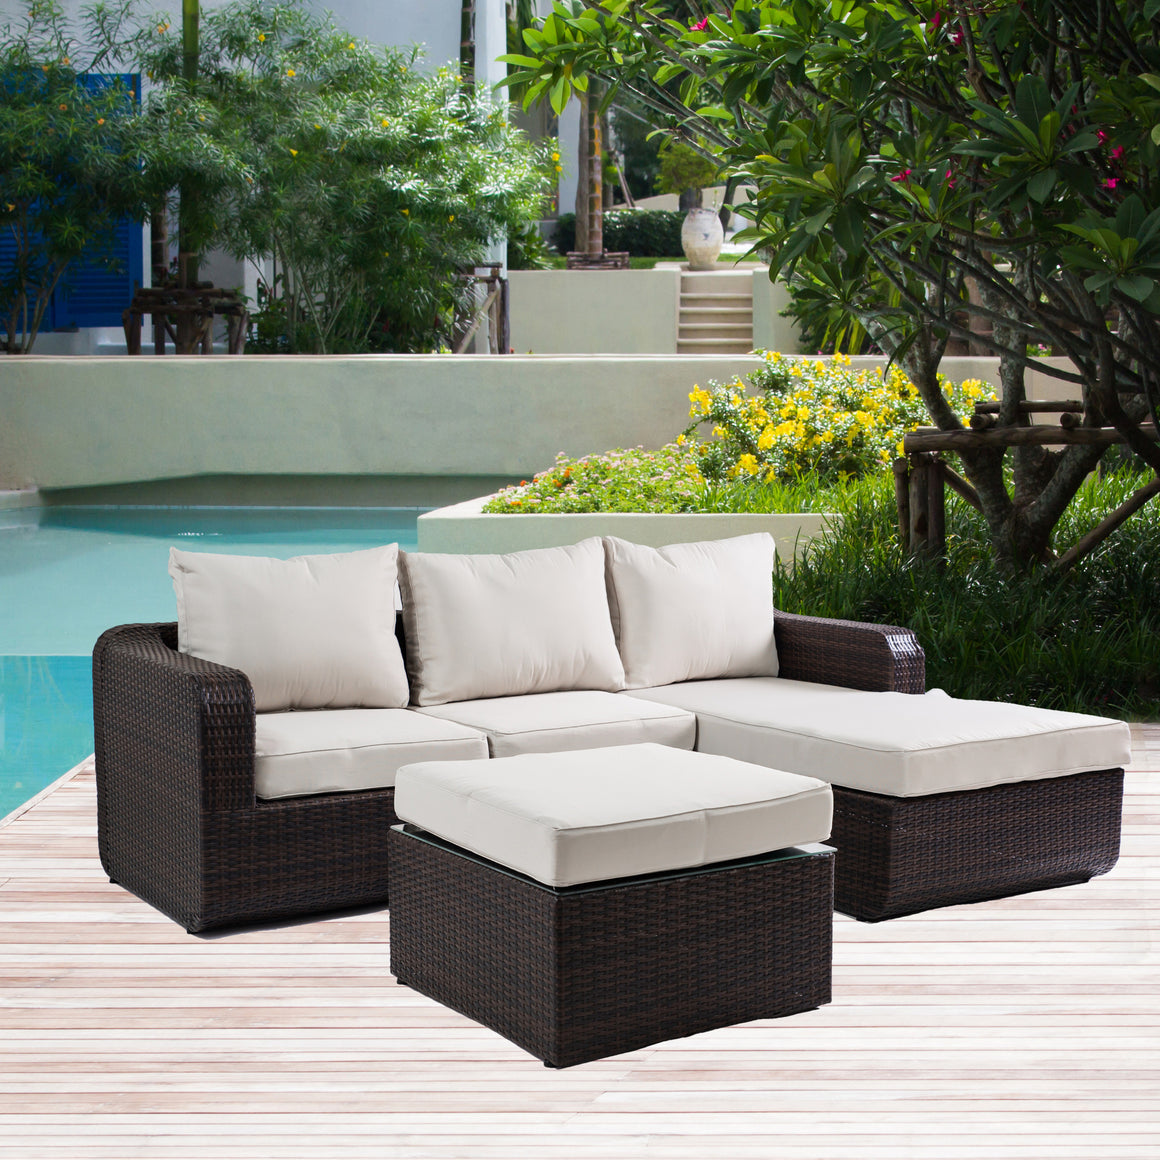 W Unlimited Aspire Collection Outdoor Garden Dark Brown Wicker Conversational Furniture 3PC set w/ Beige Cushion , W Unlimited- grayburd